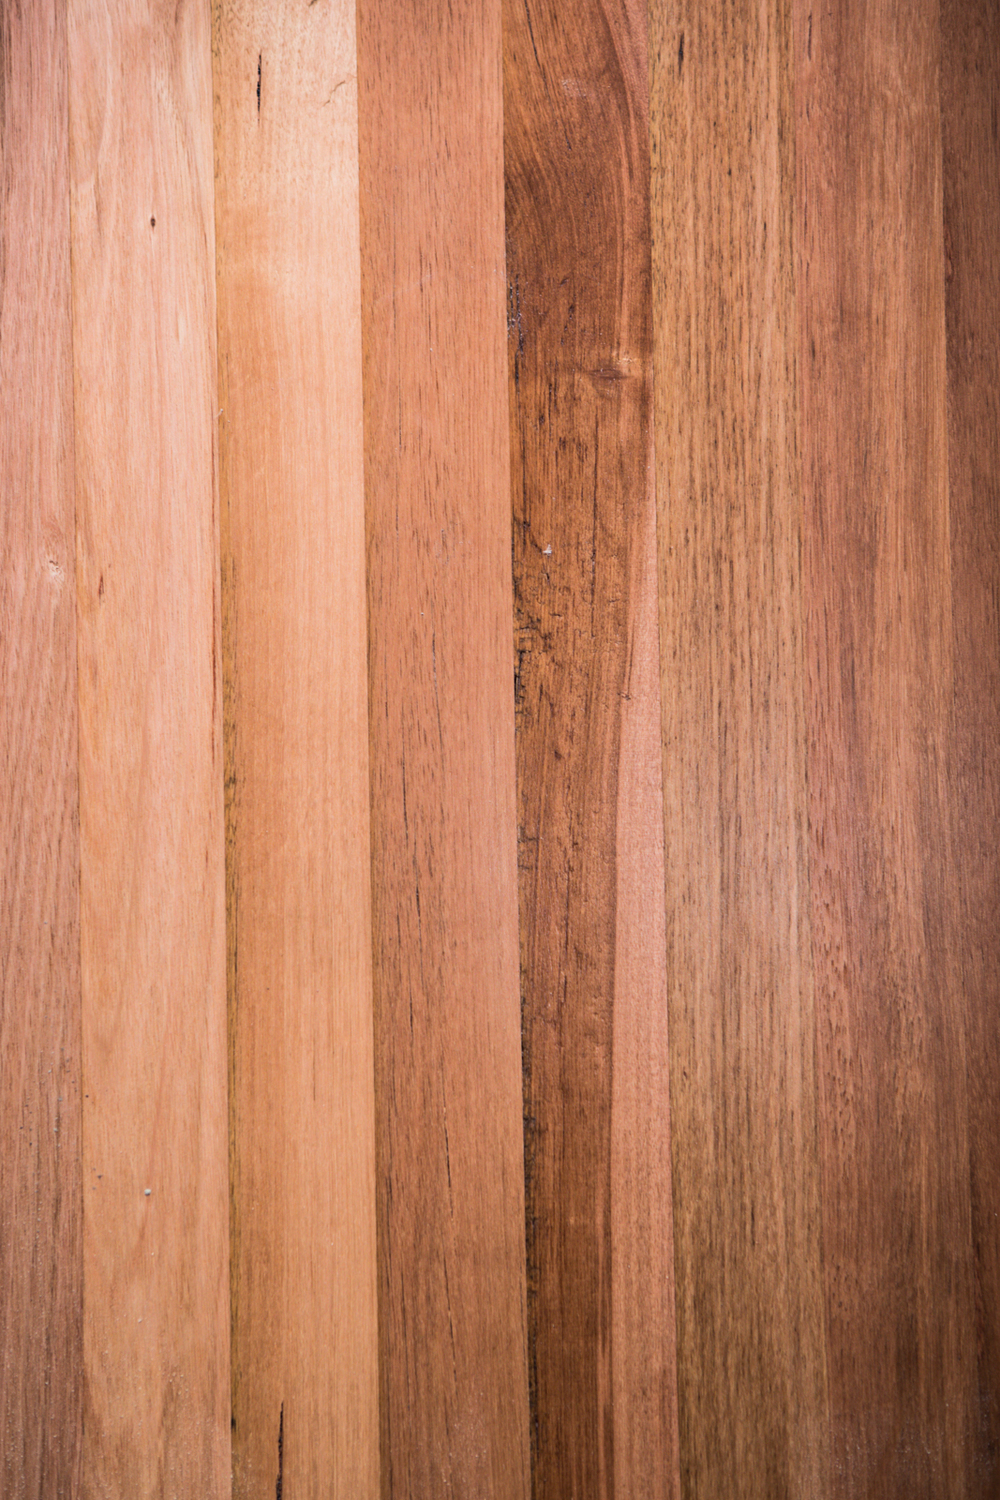 tas oak tongue and groove mix